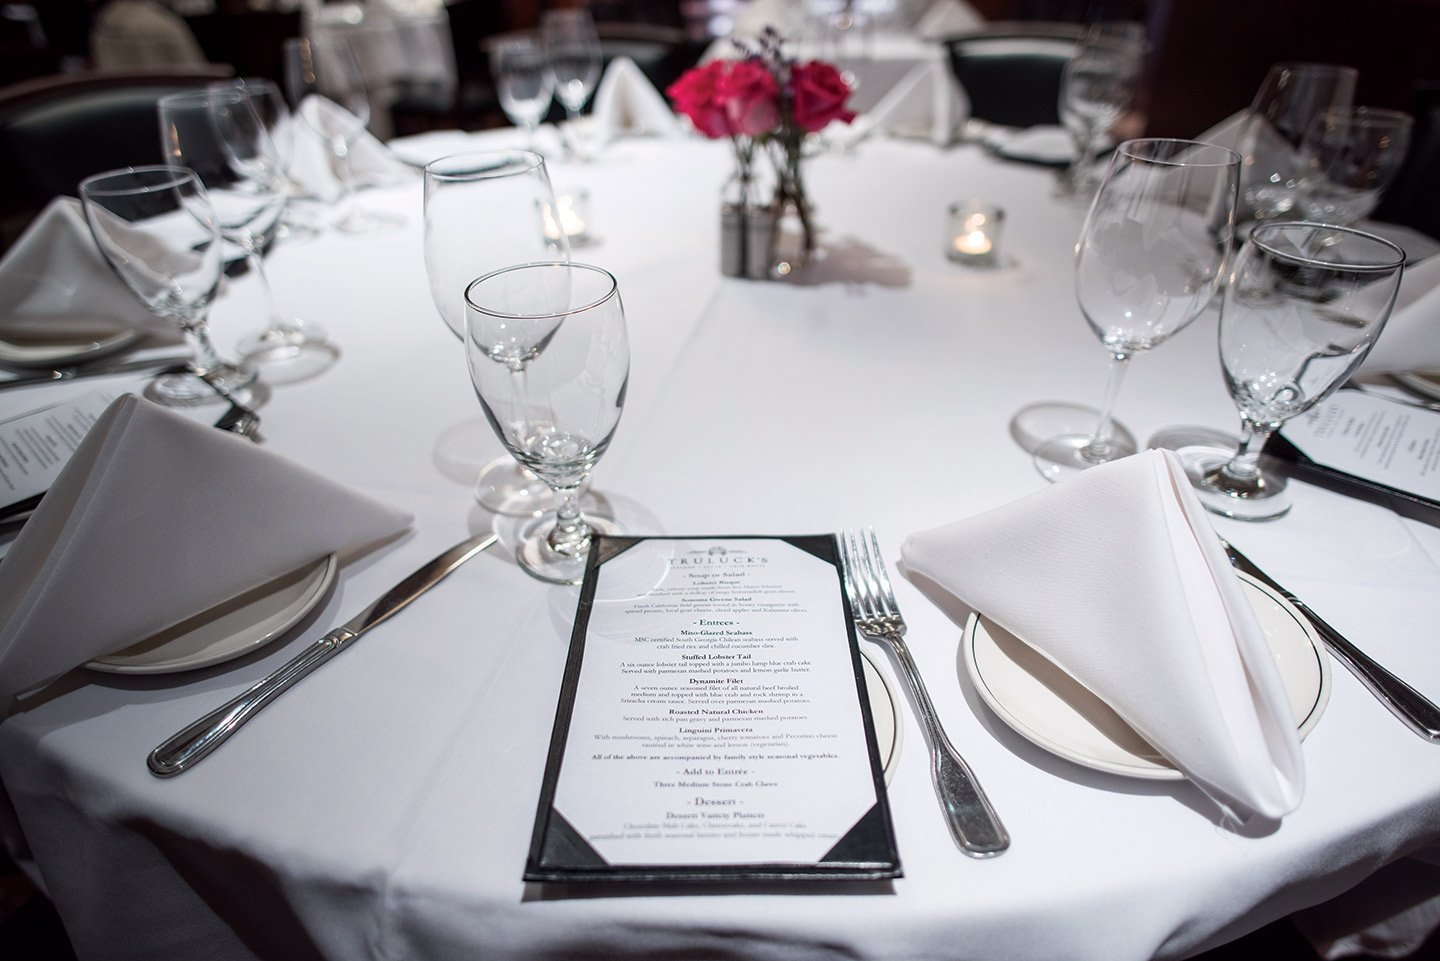 Truluck's private dining table setup with place settings